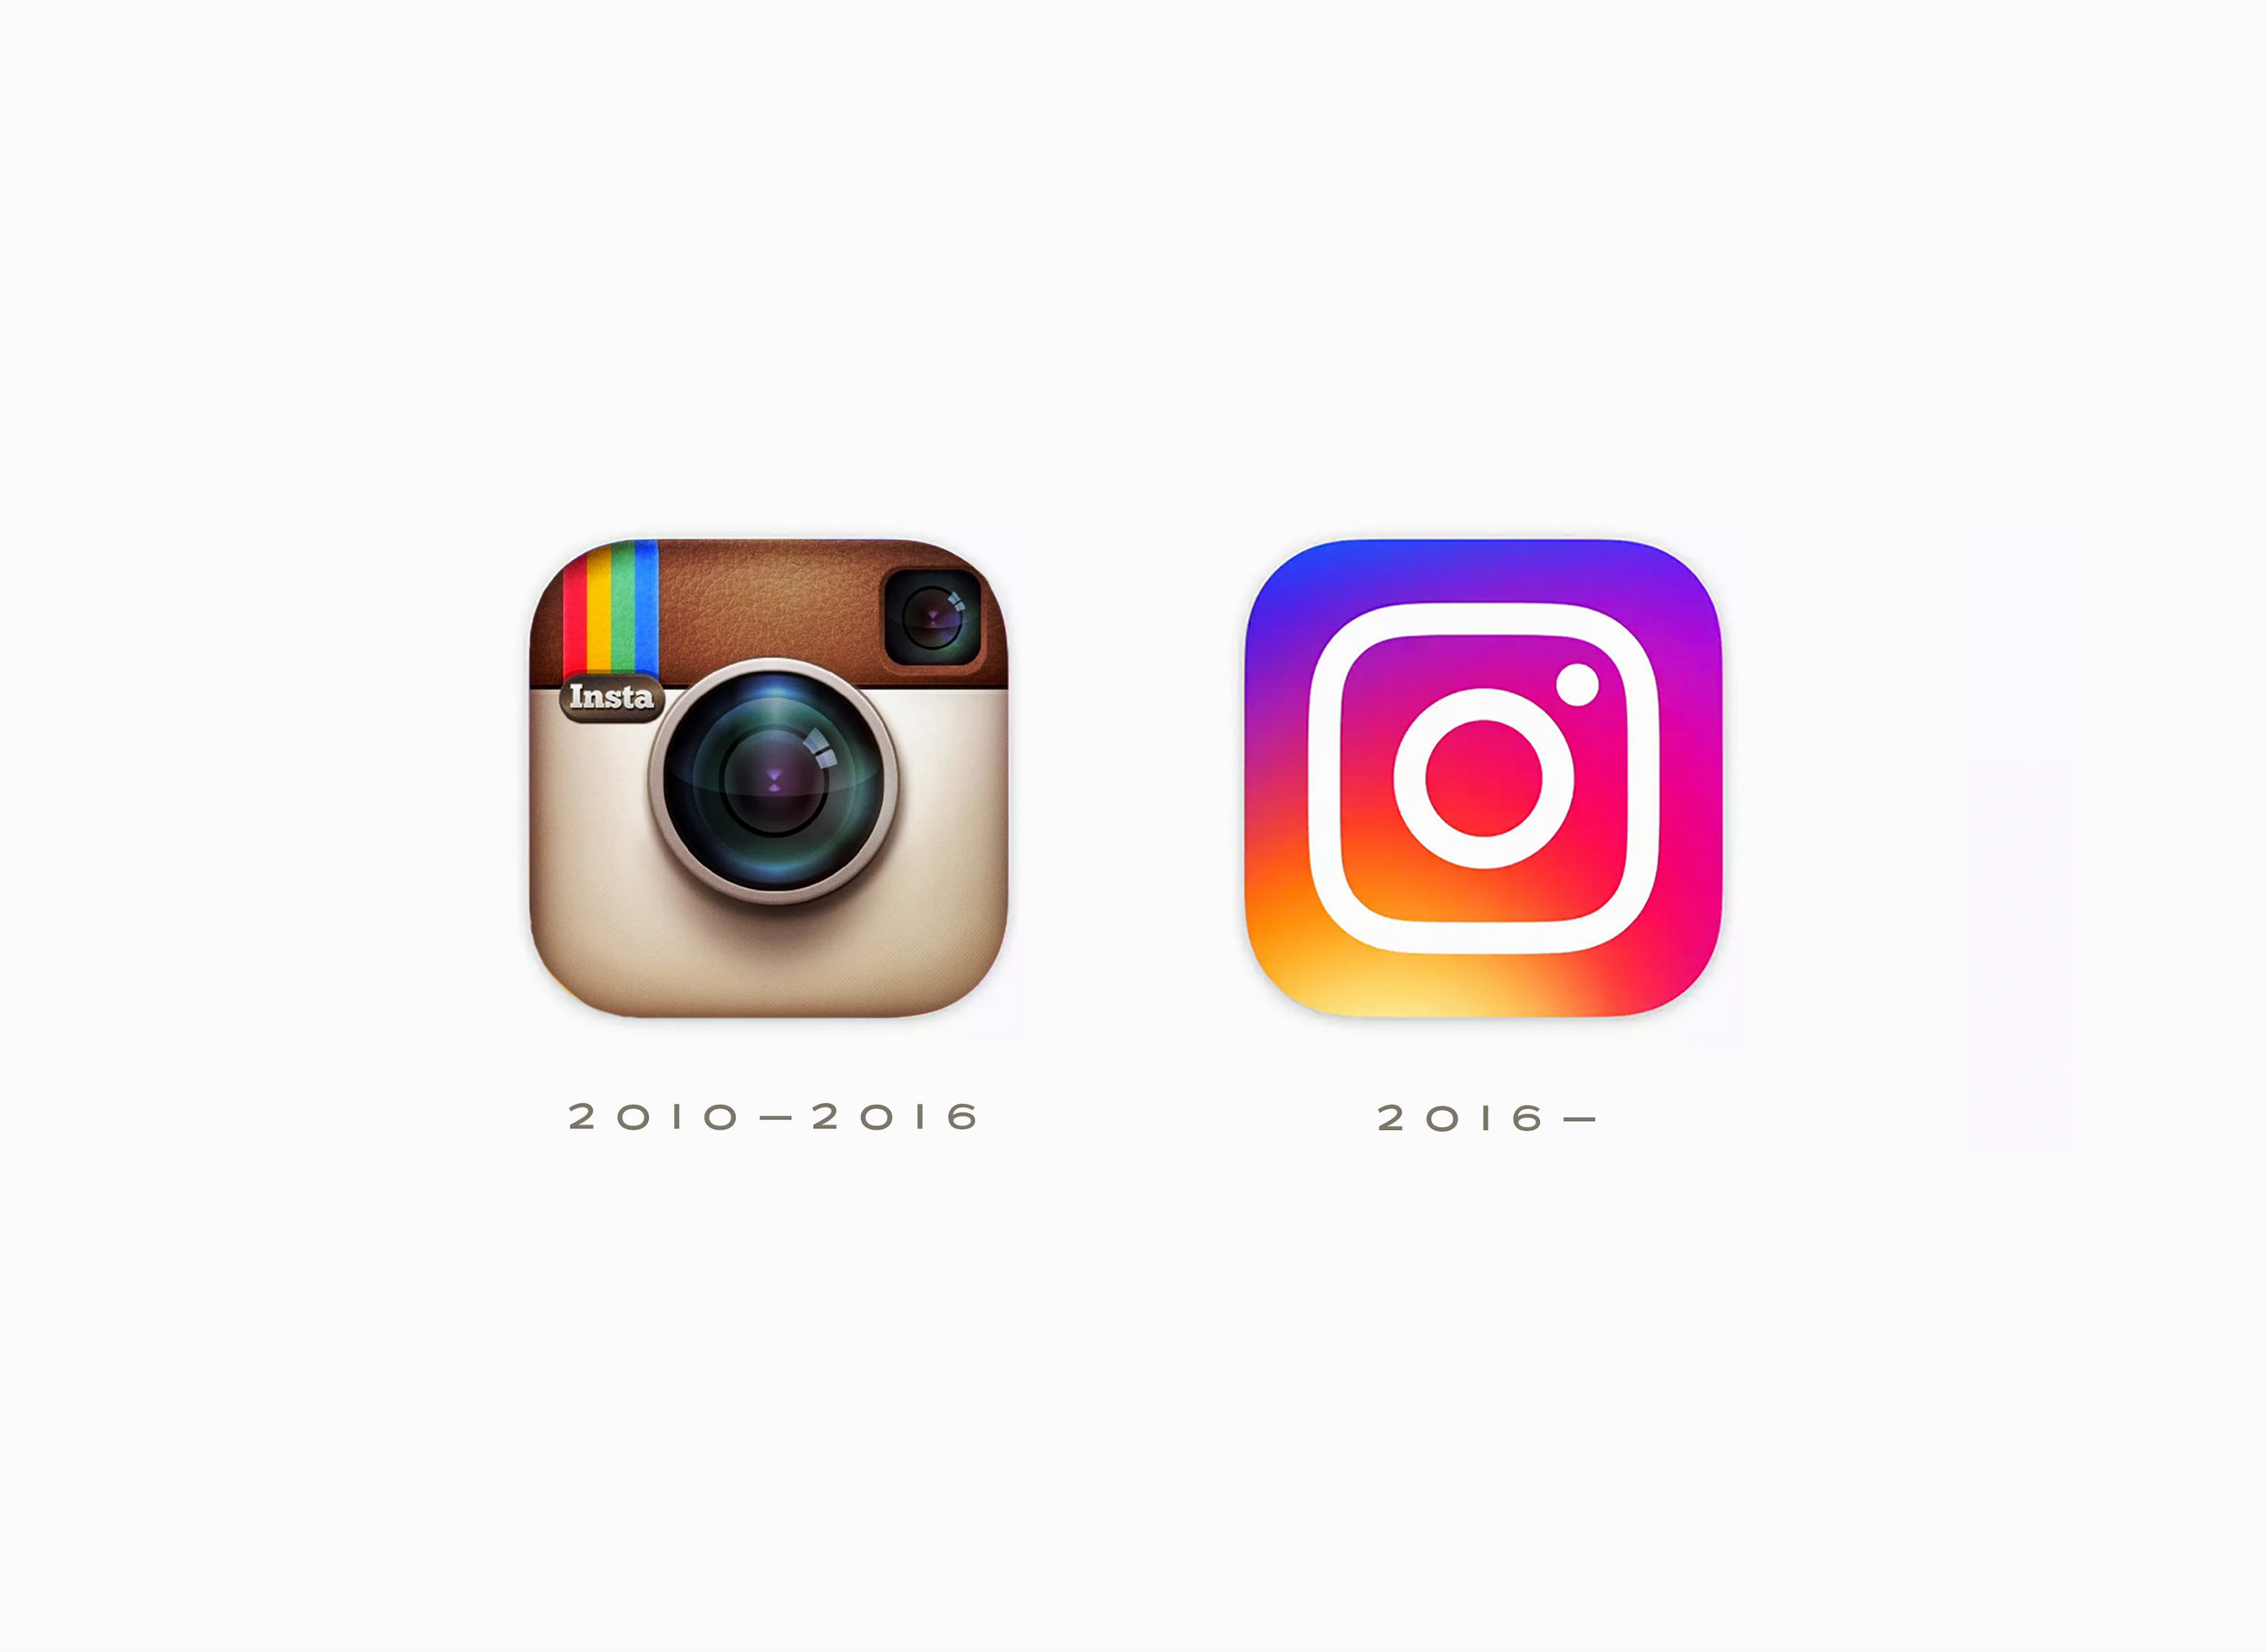 Does a Logo Really Matter? - On May 11, 2016, Instagram changed its logo. The Internet responded with vigor.